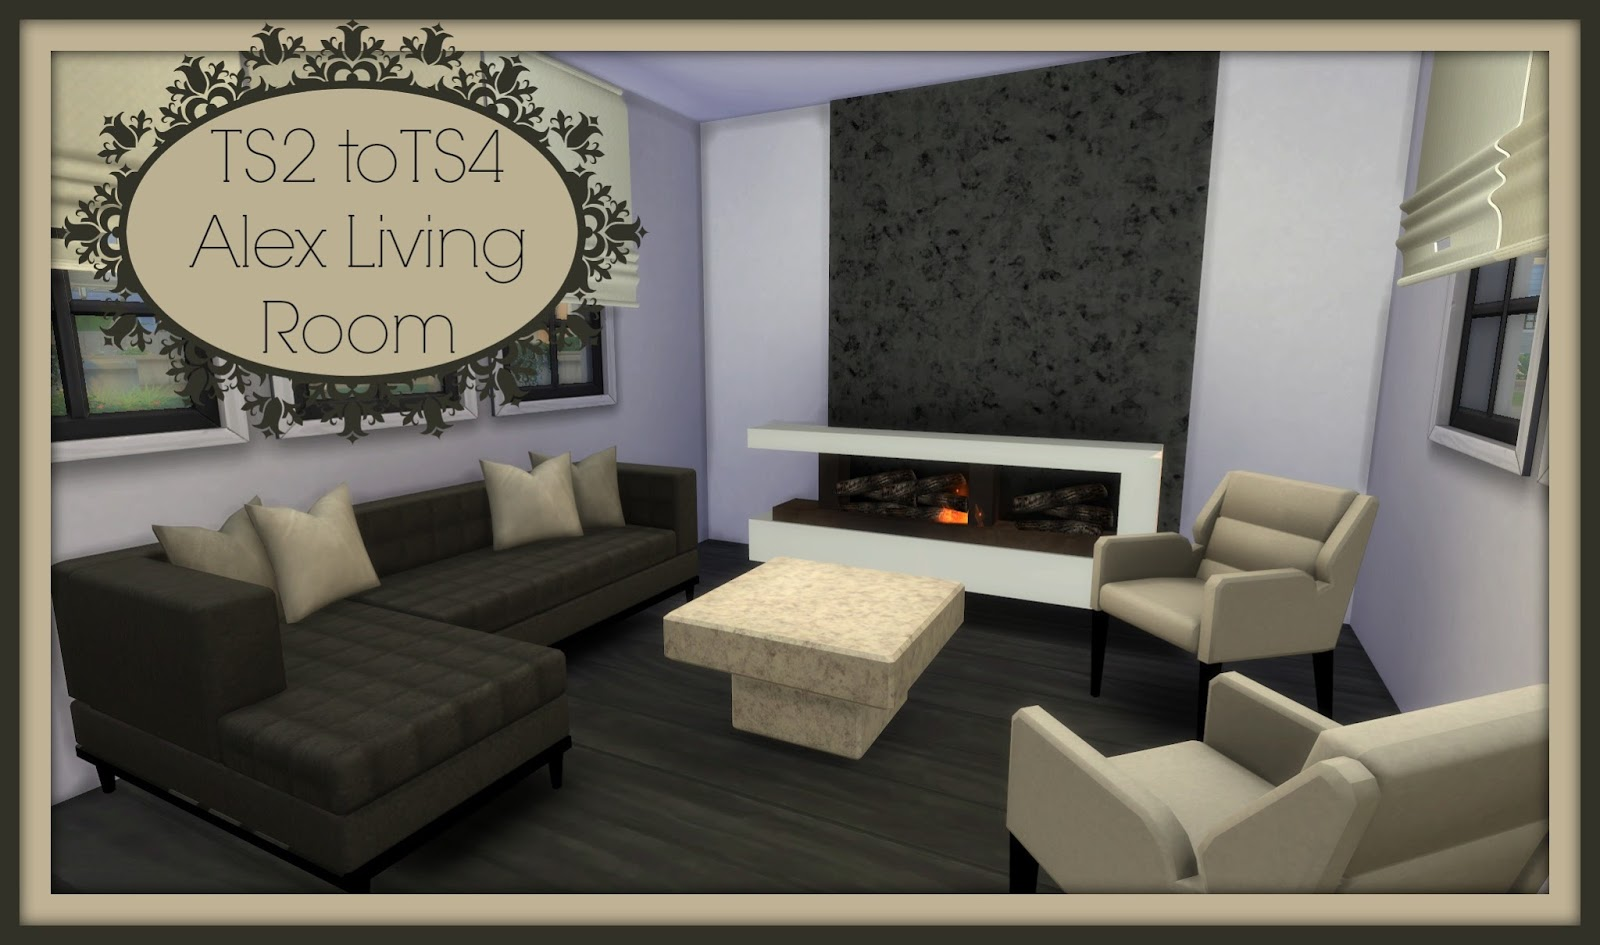 Sims 4 Living Room Ideas No Cc Ayathebook Com